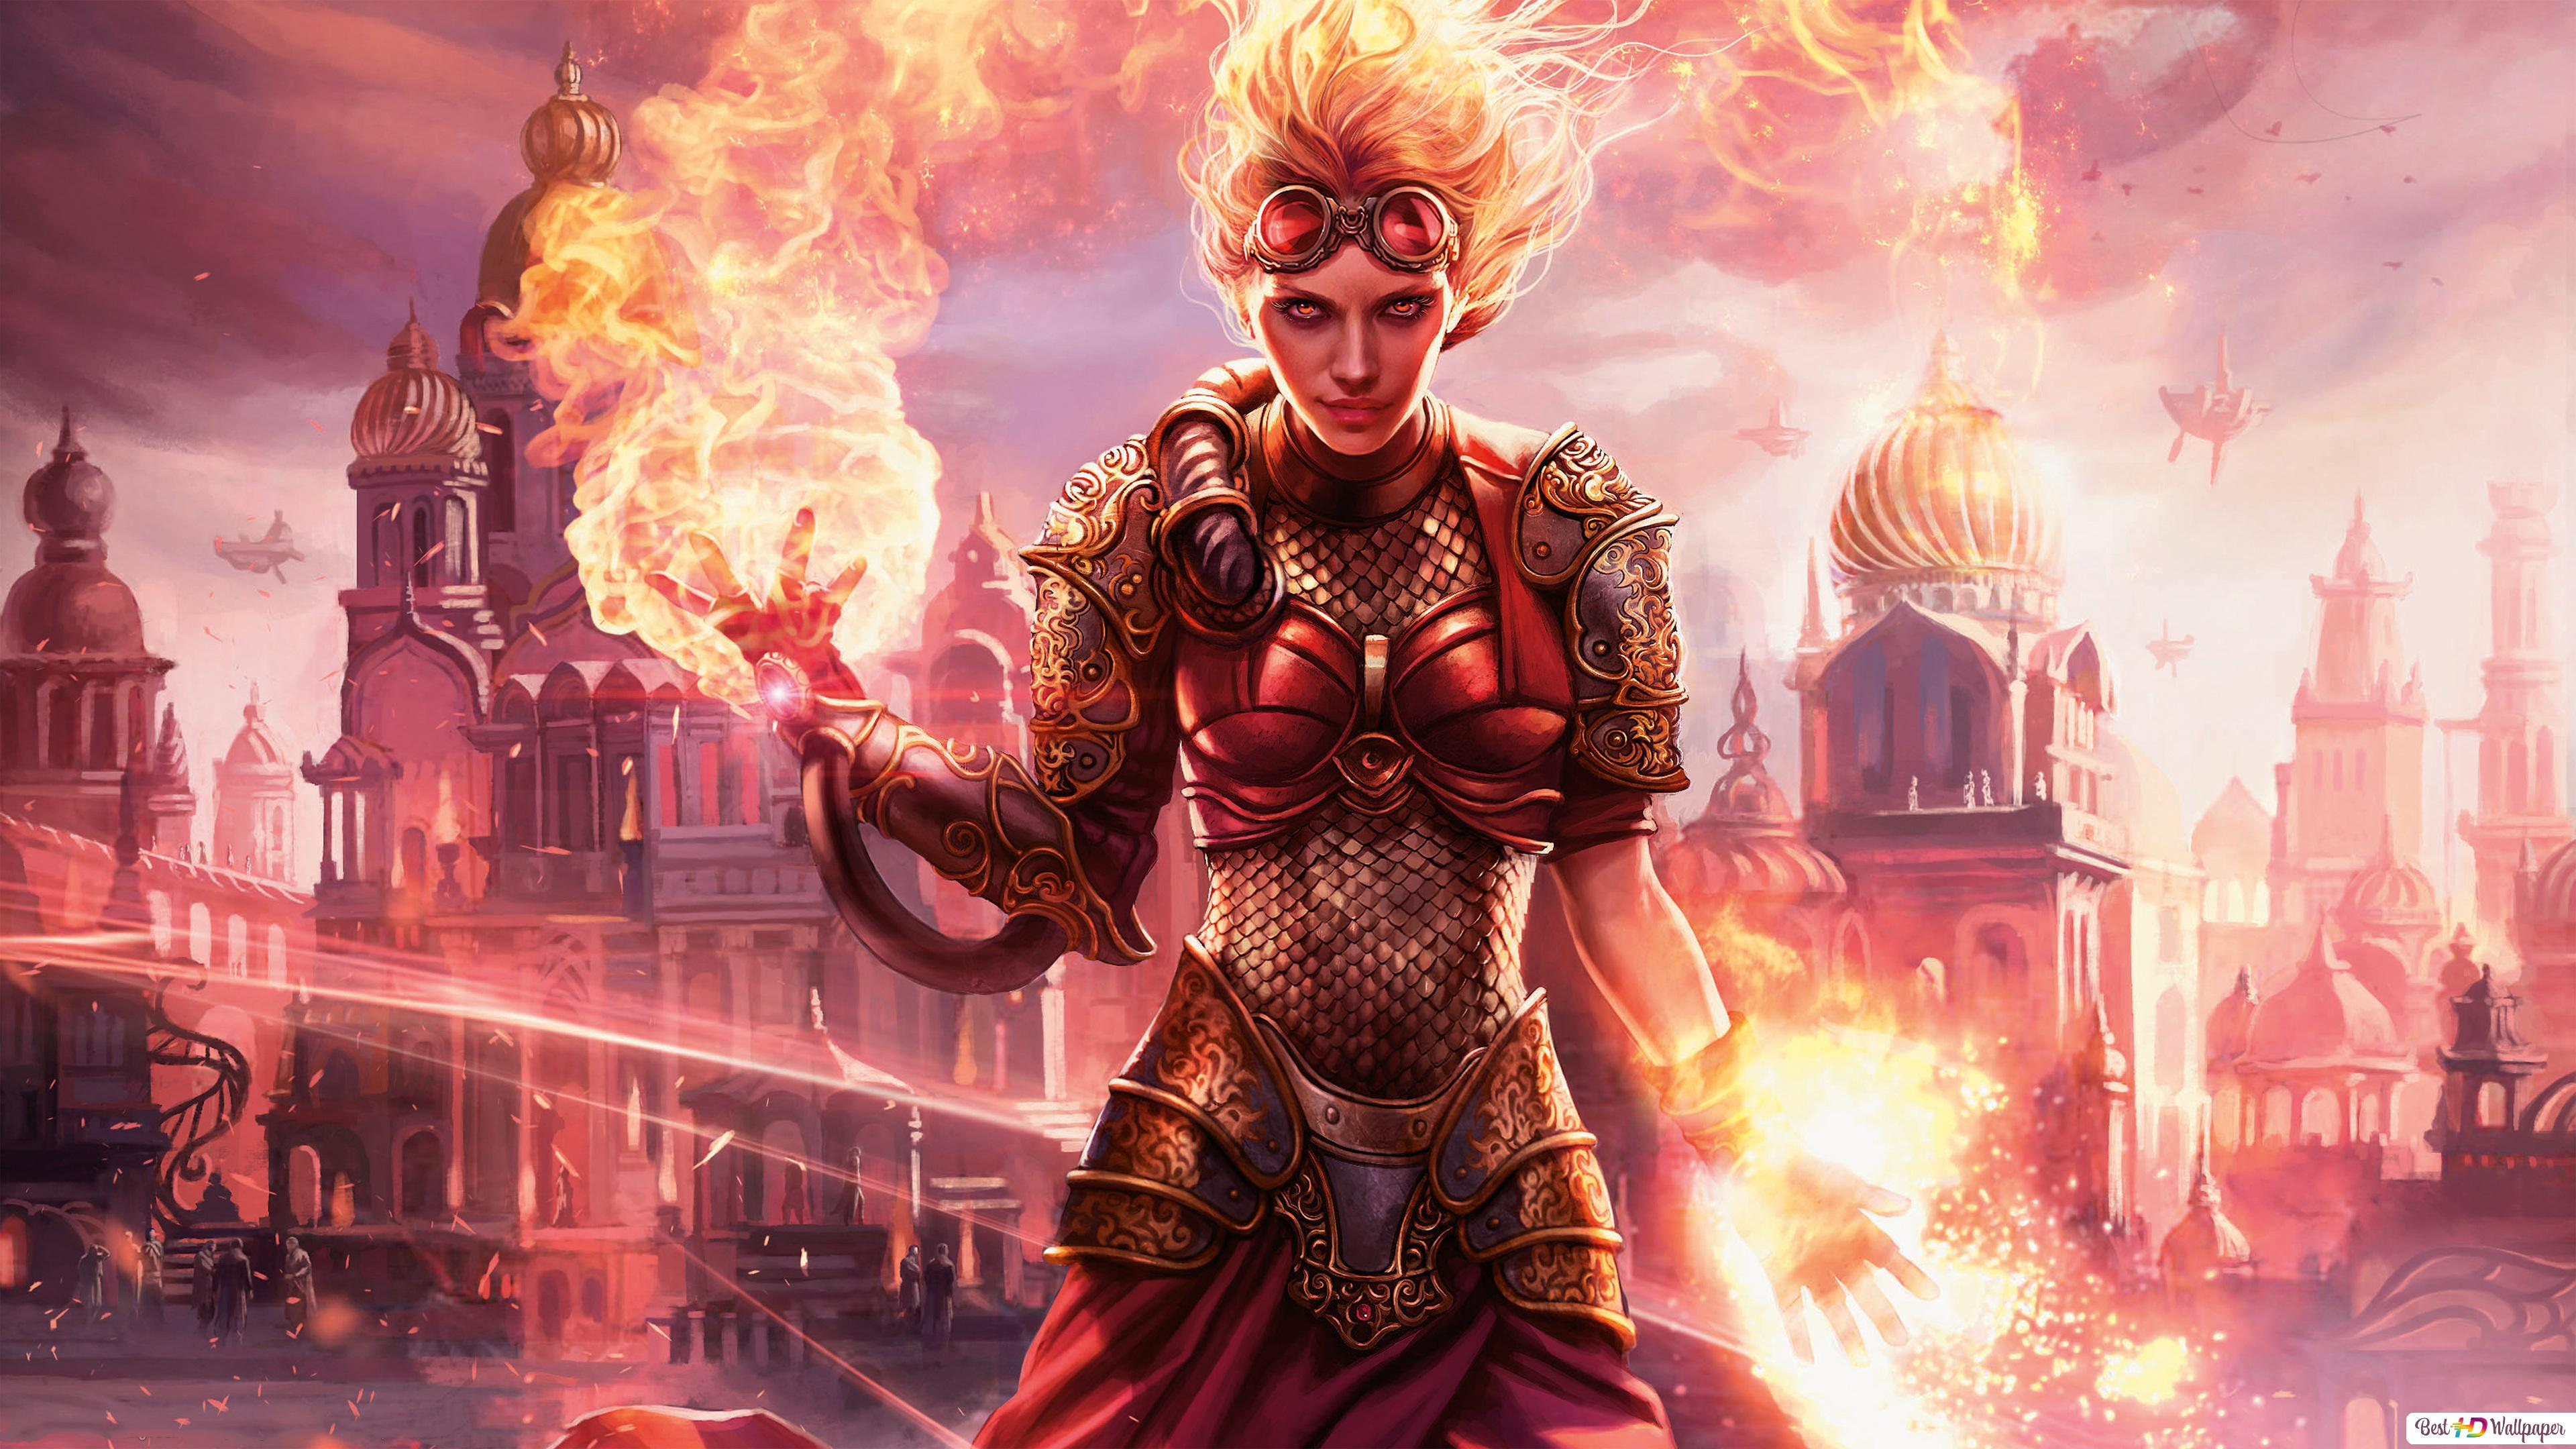 Magic The Gathering Arena Hd Wallpaper Download